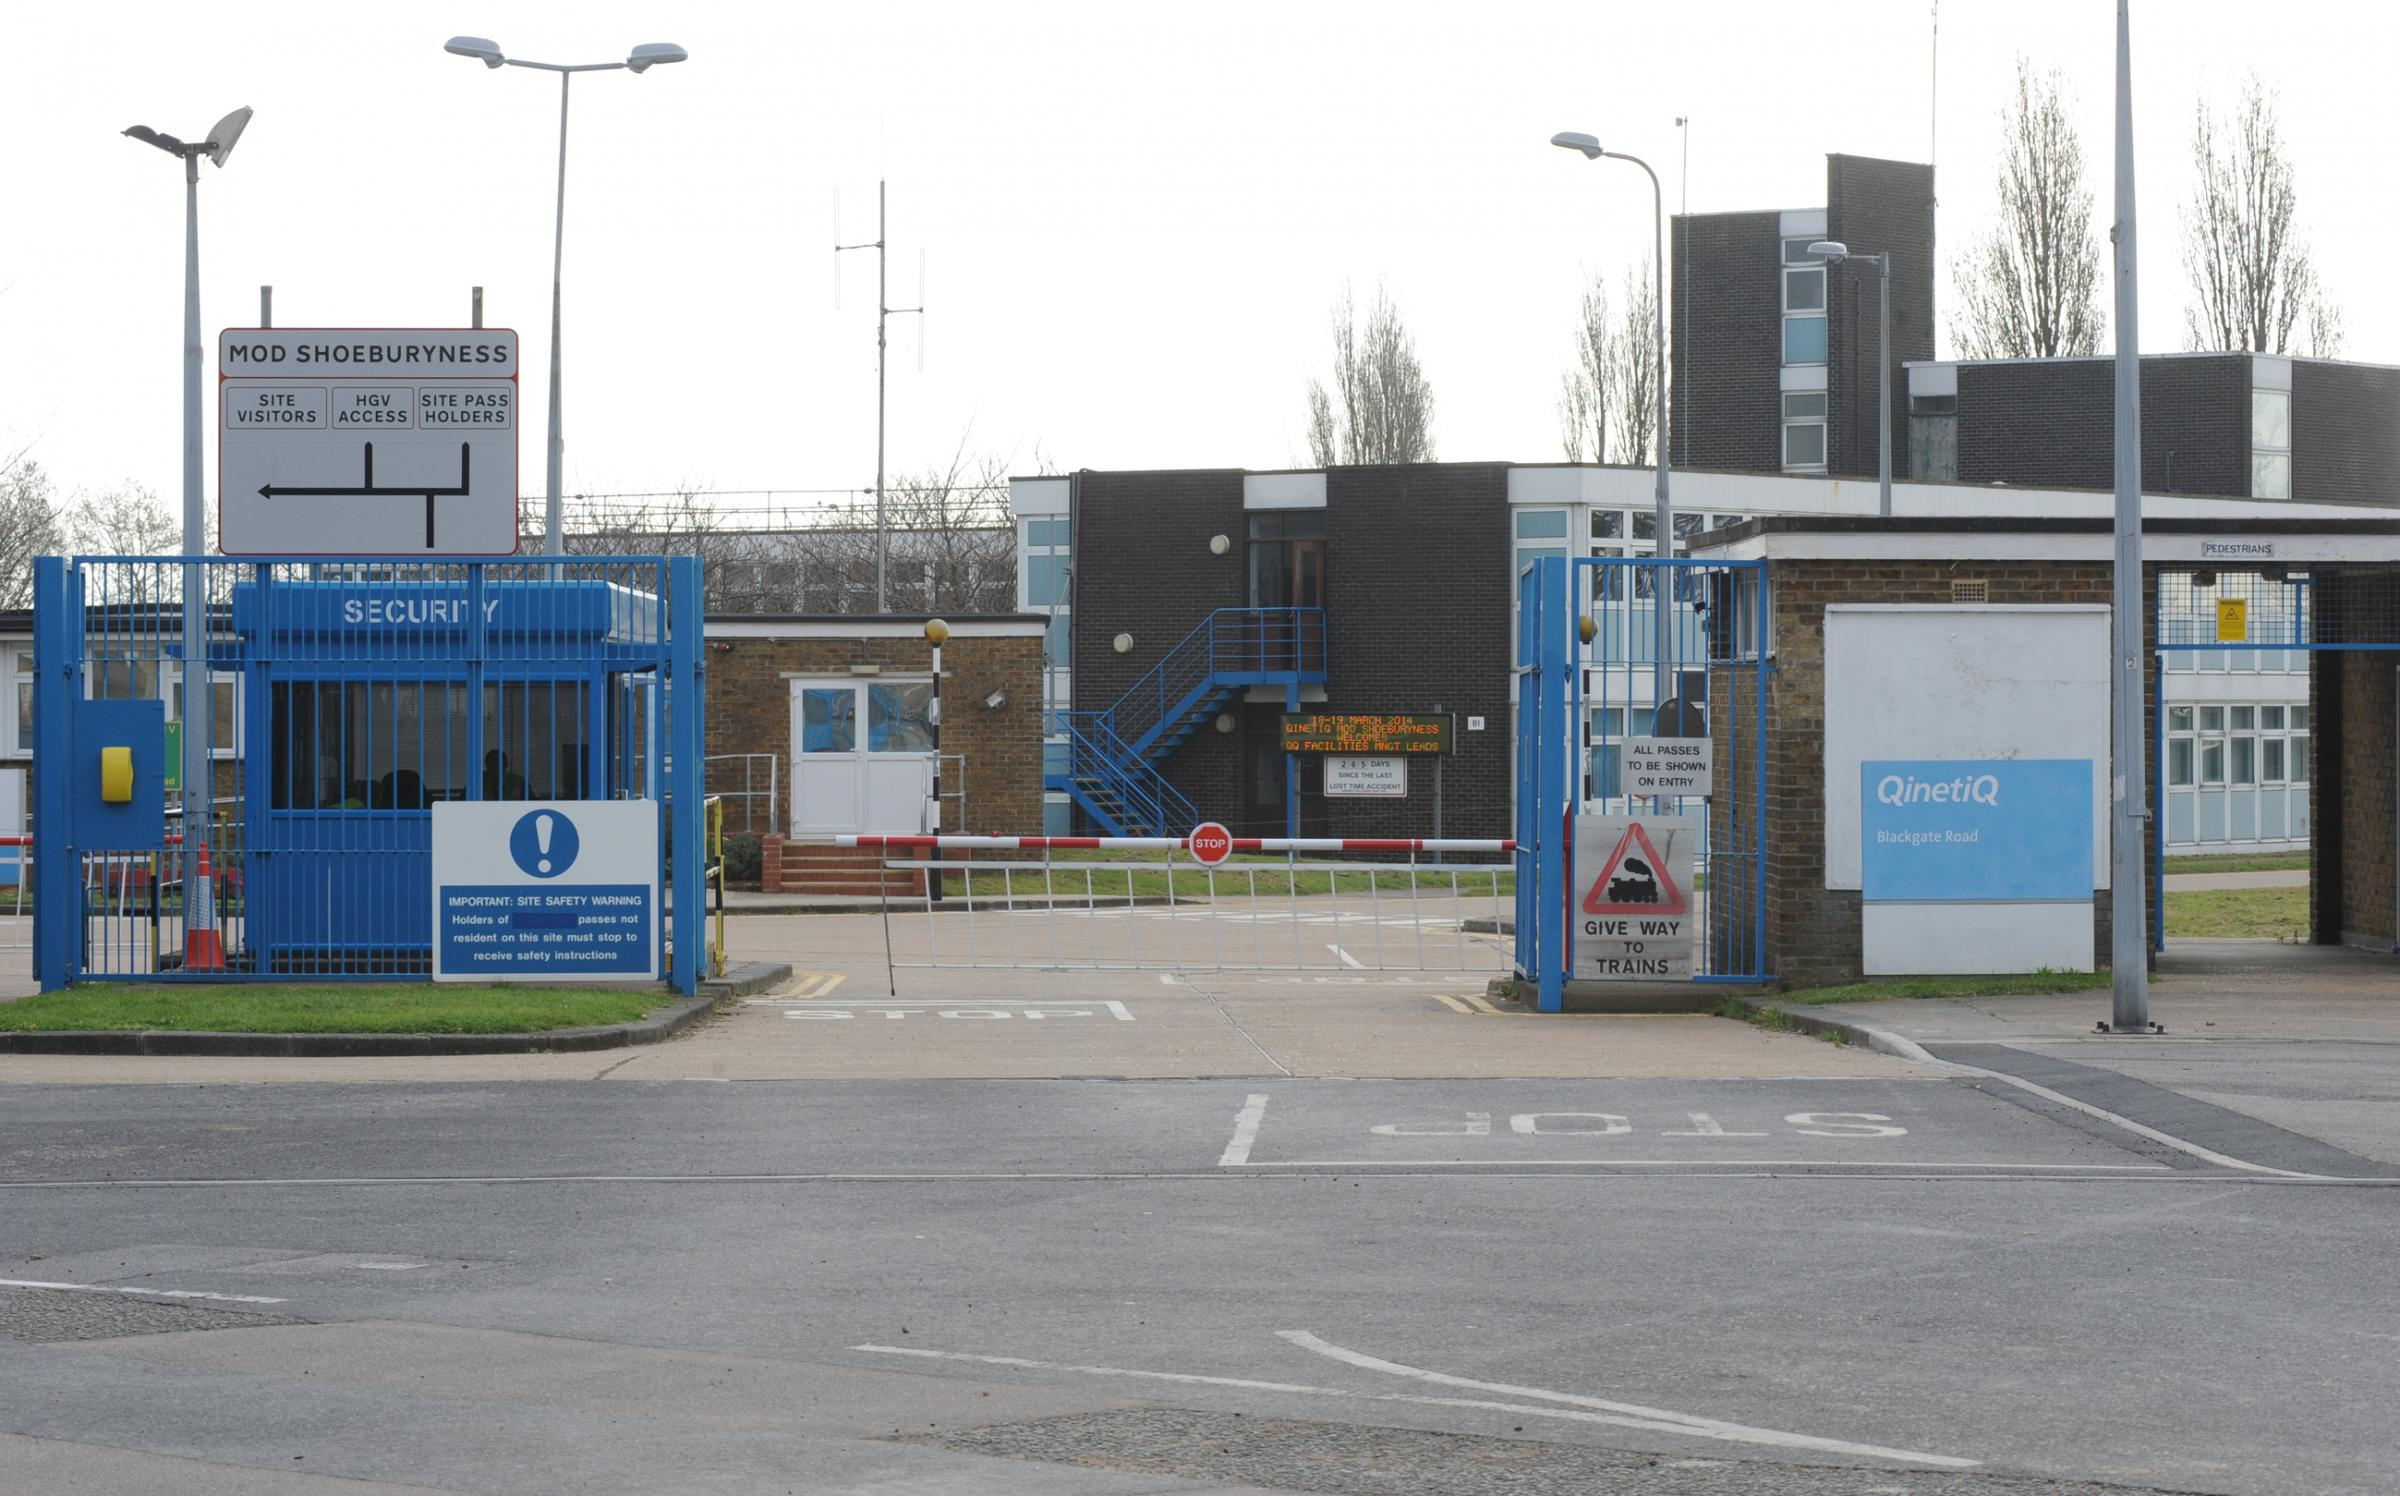 Headquarters - the QinetiQ site in Shoebury